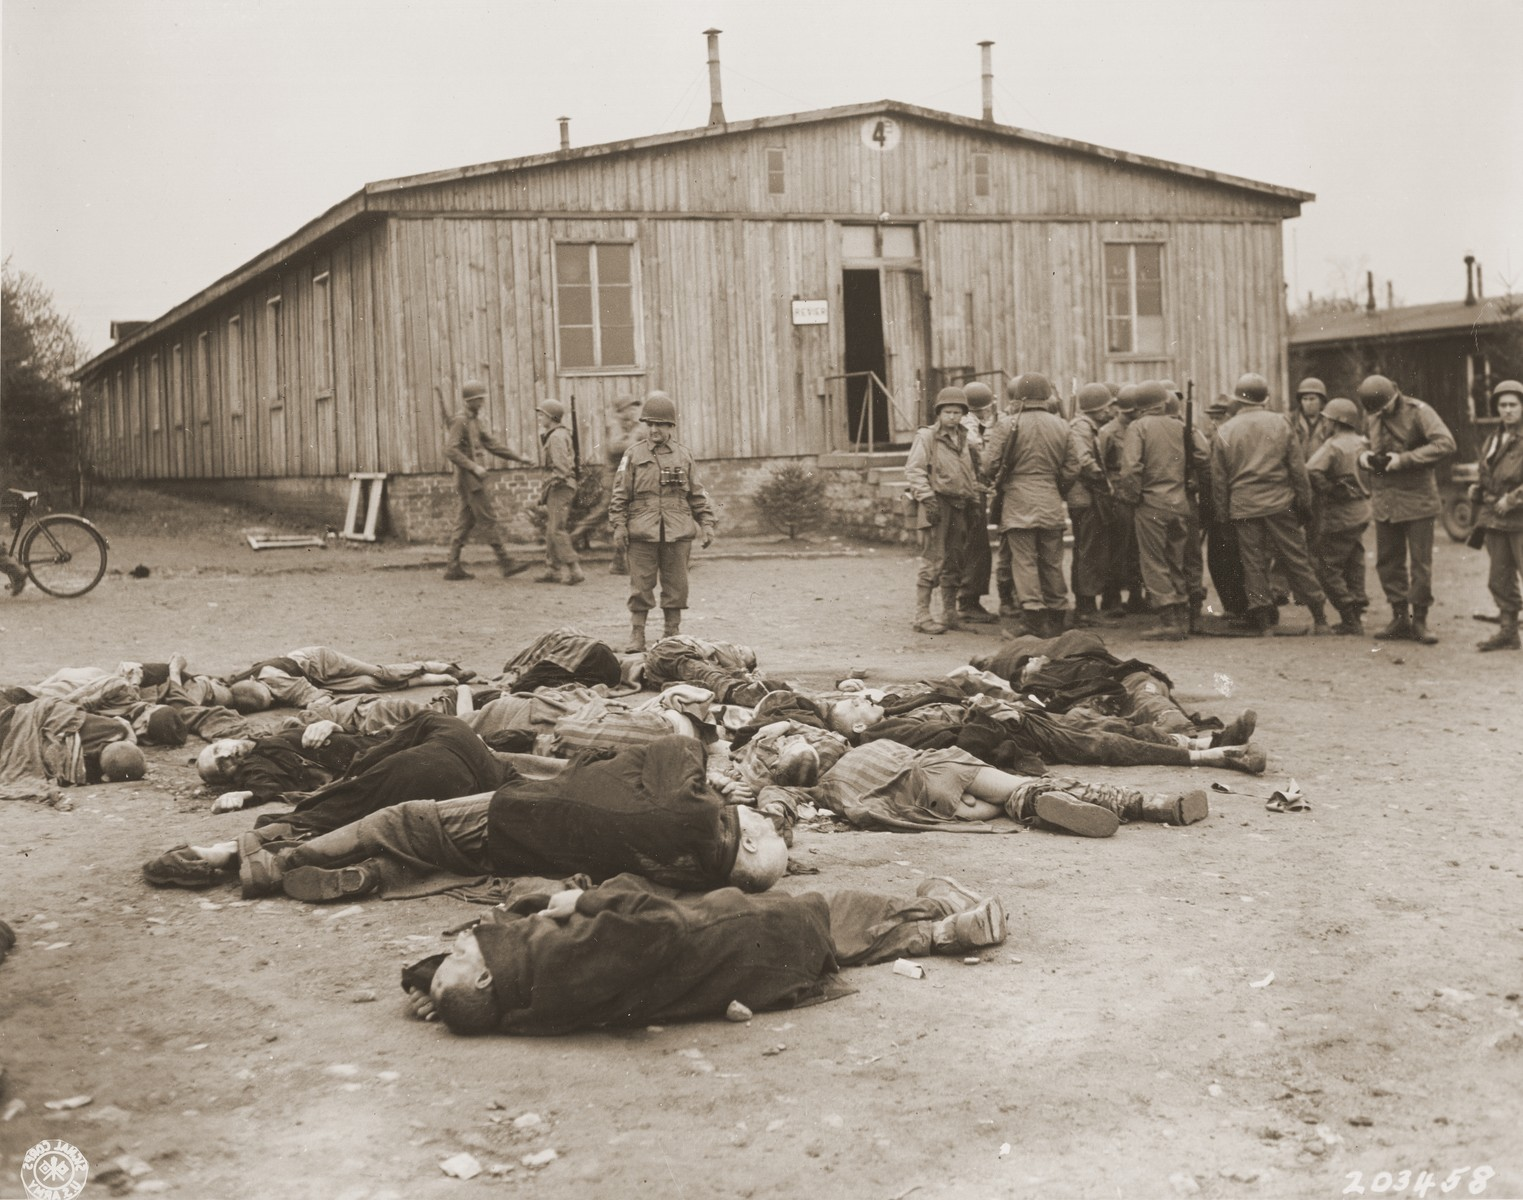 American soldiers view the bodies of prisoners that lie strewn on the ground in the newly liberated Ohrdruf concentration camp.